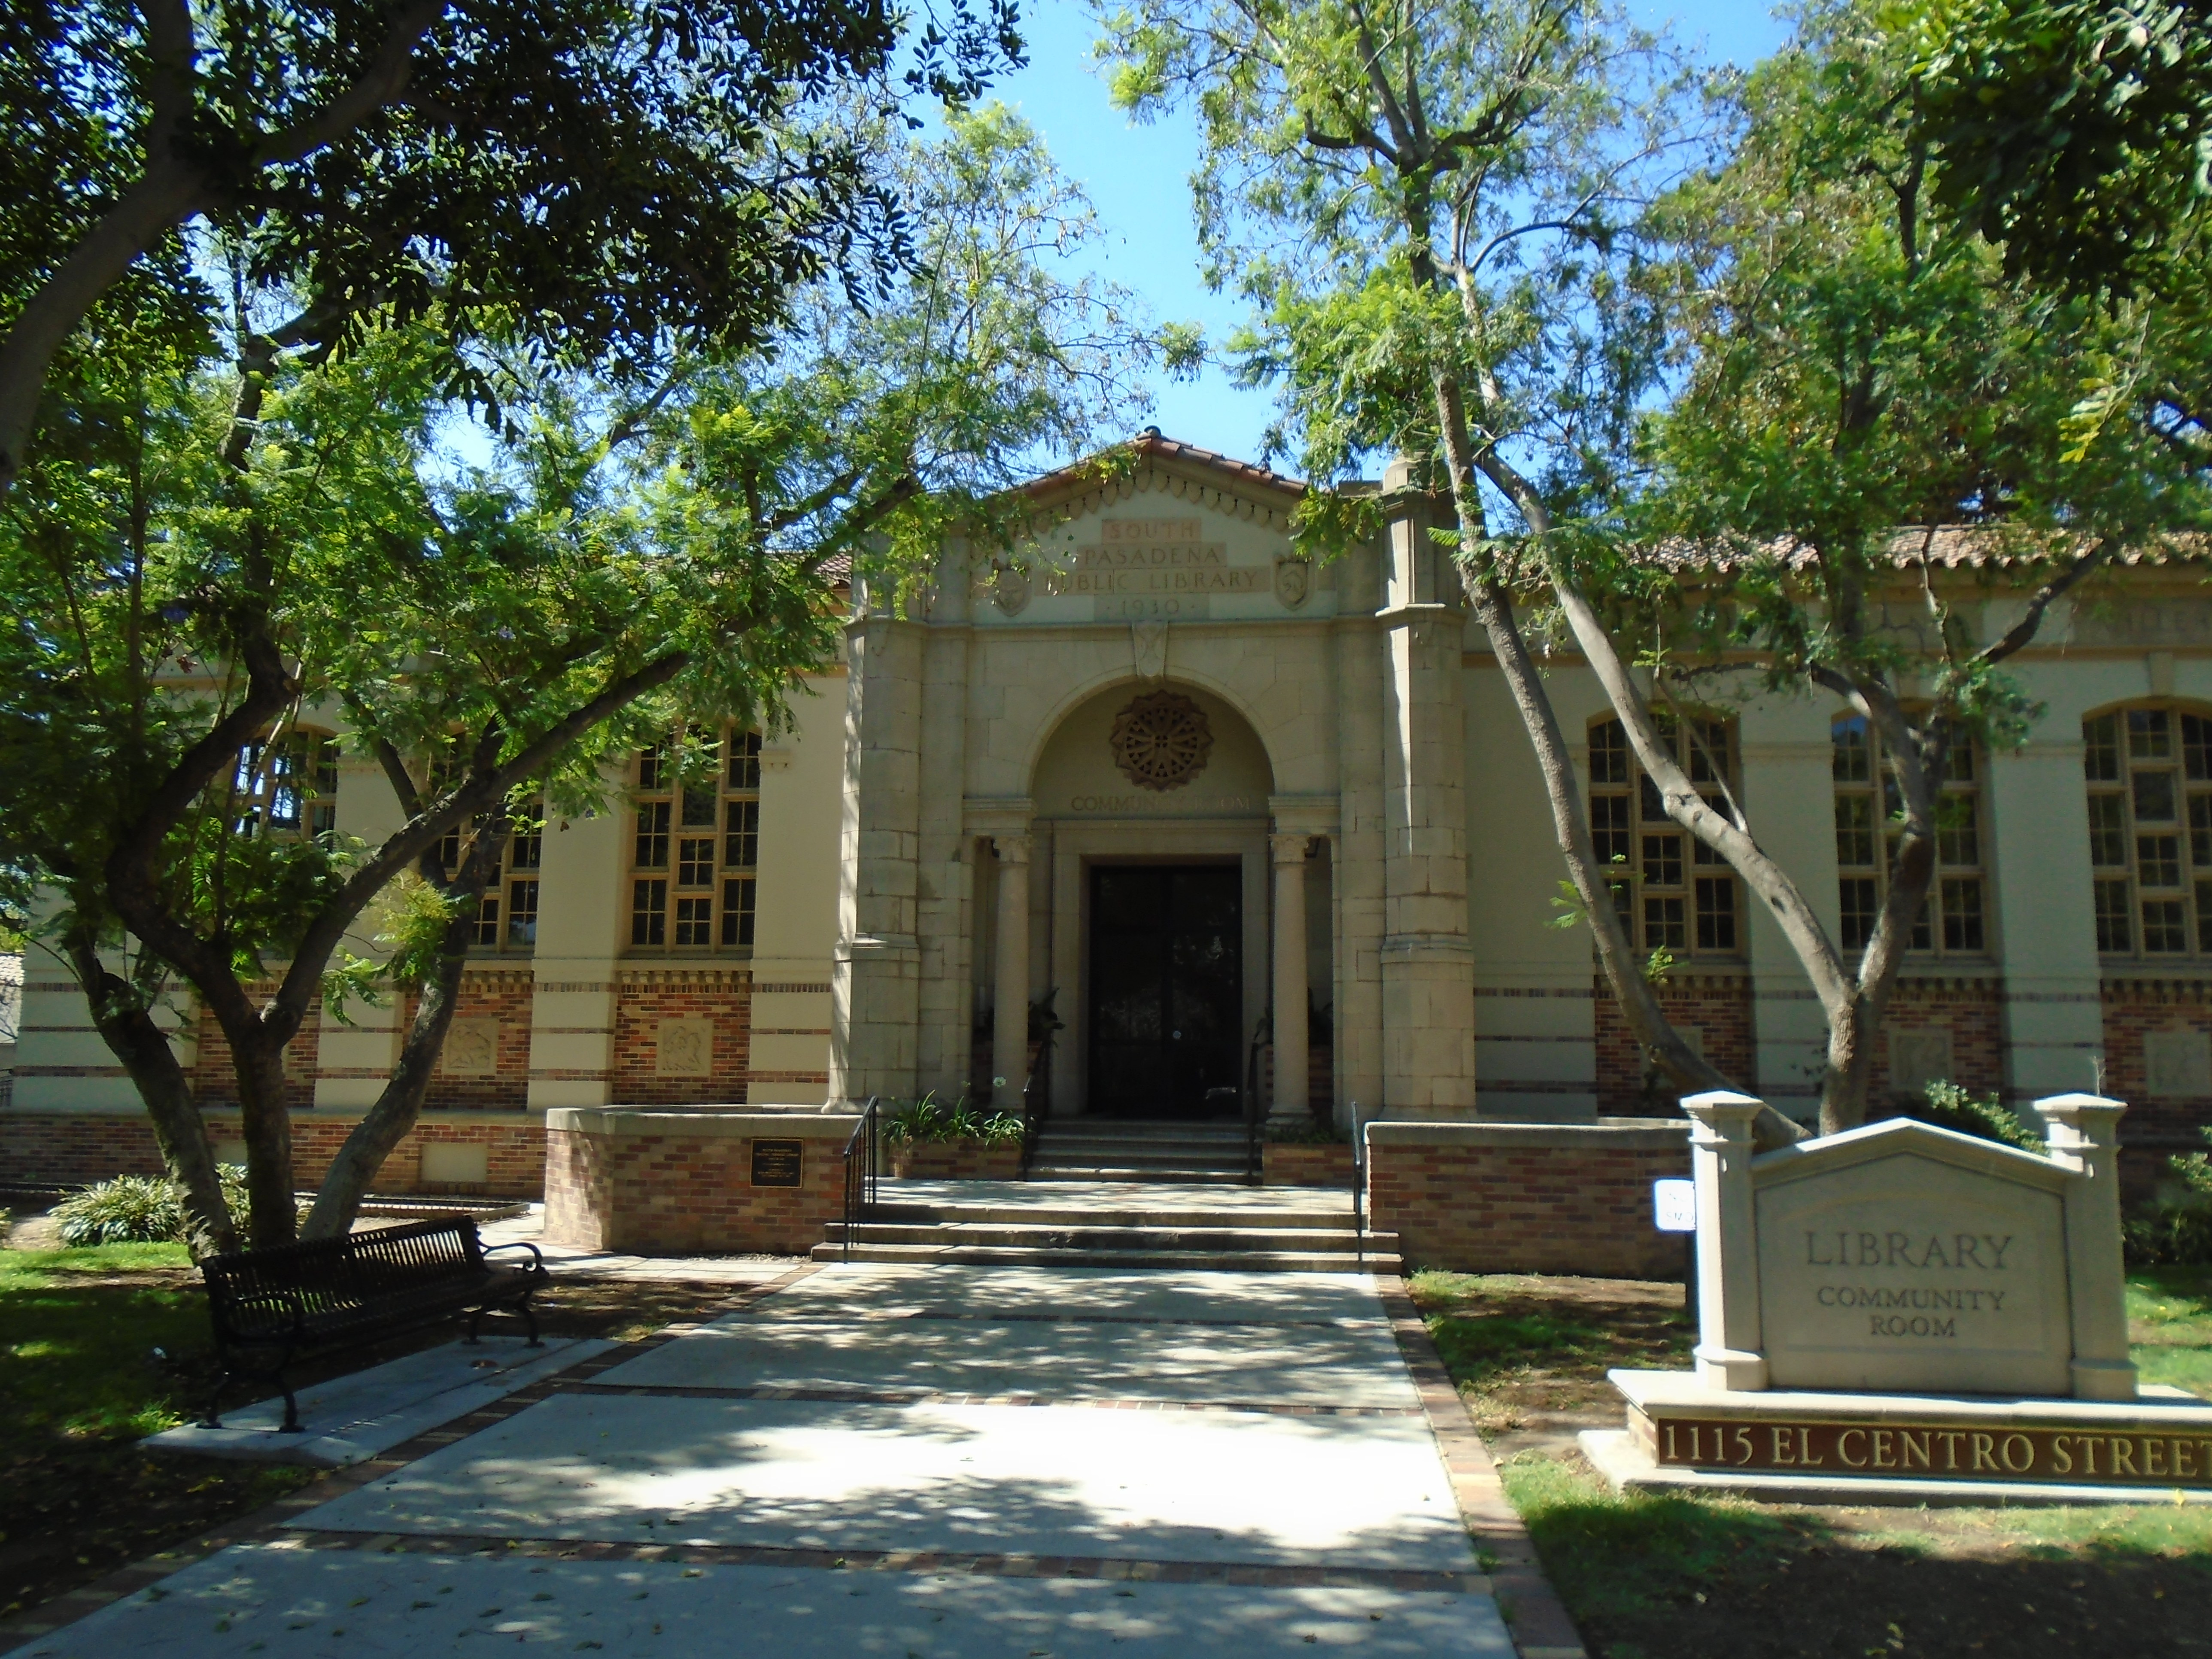 South Pasadena Library